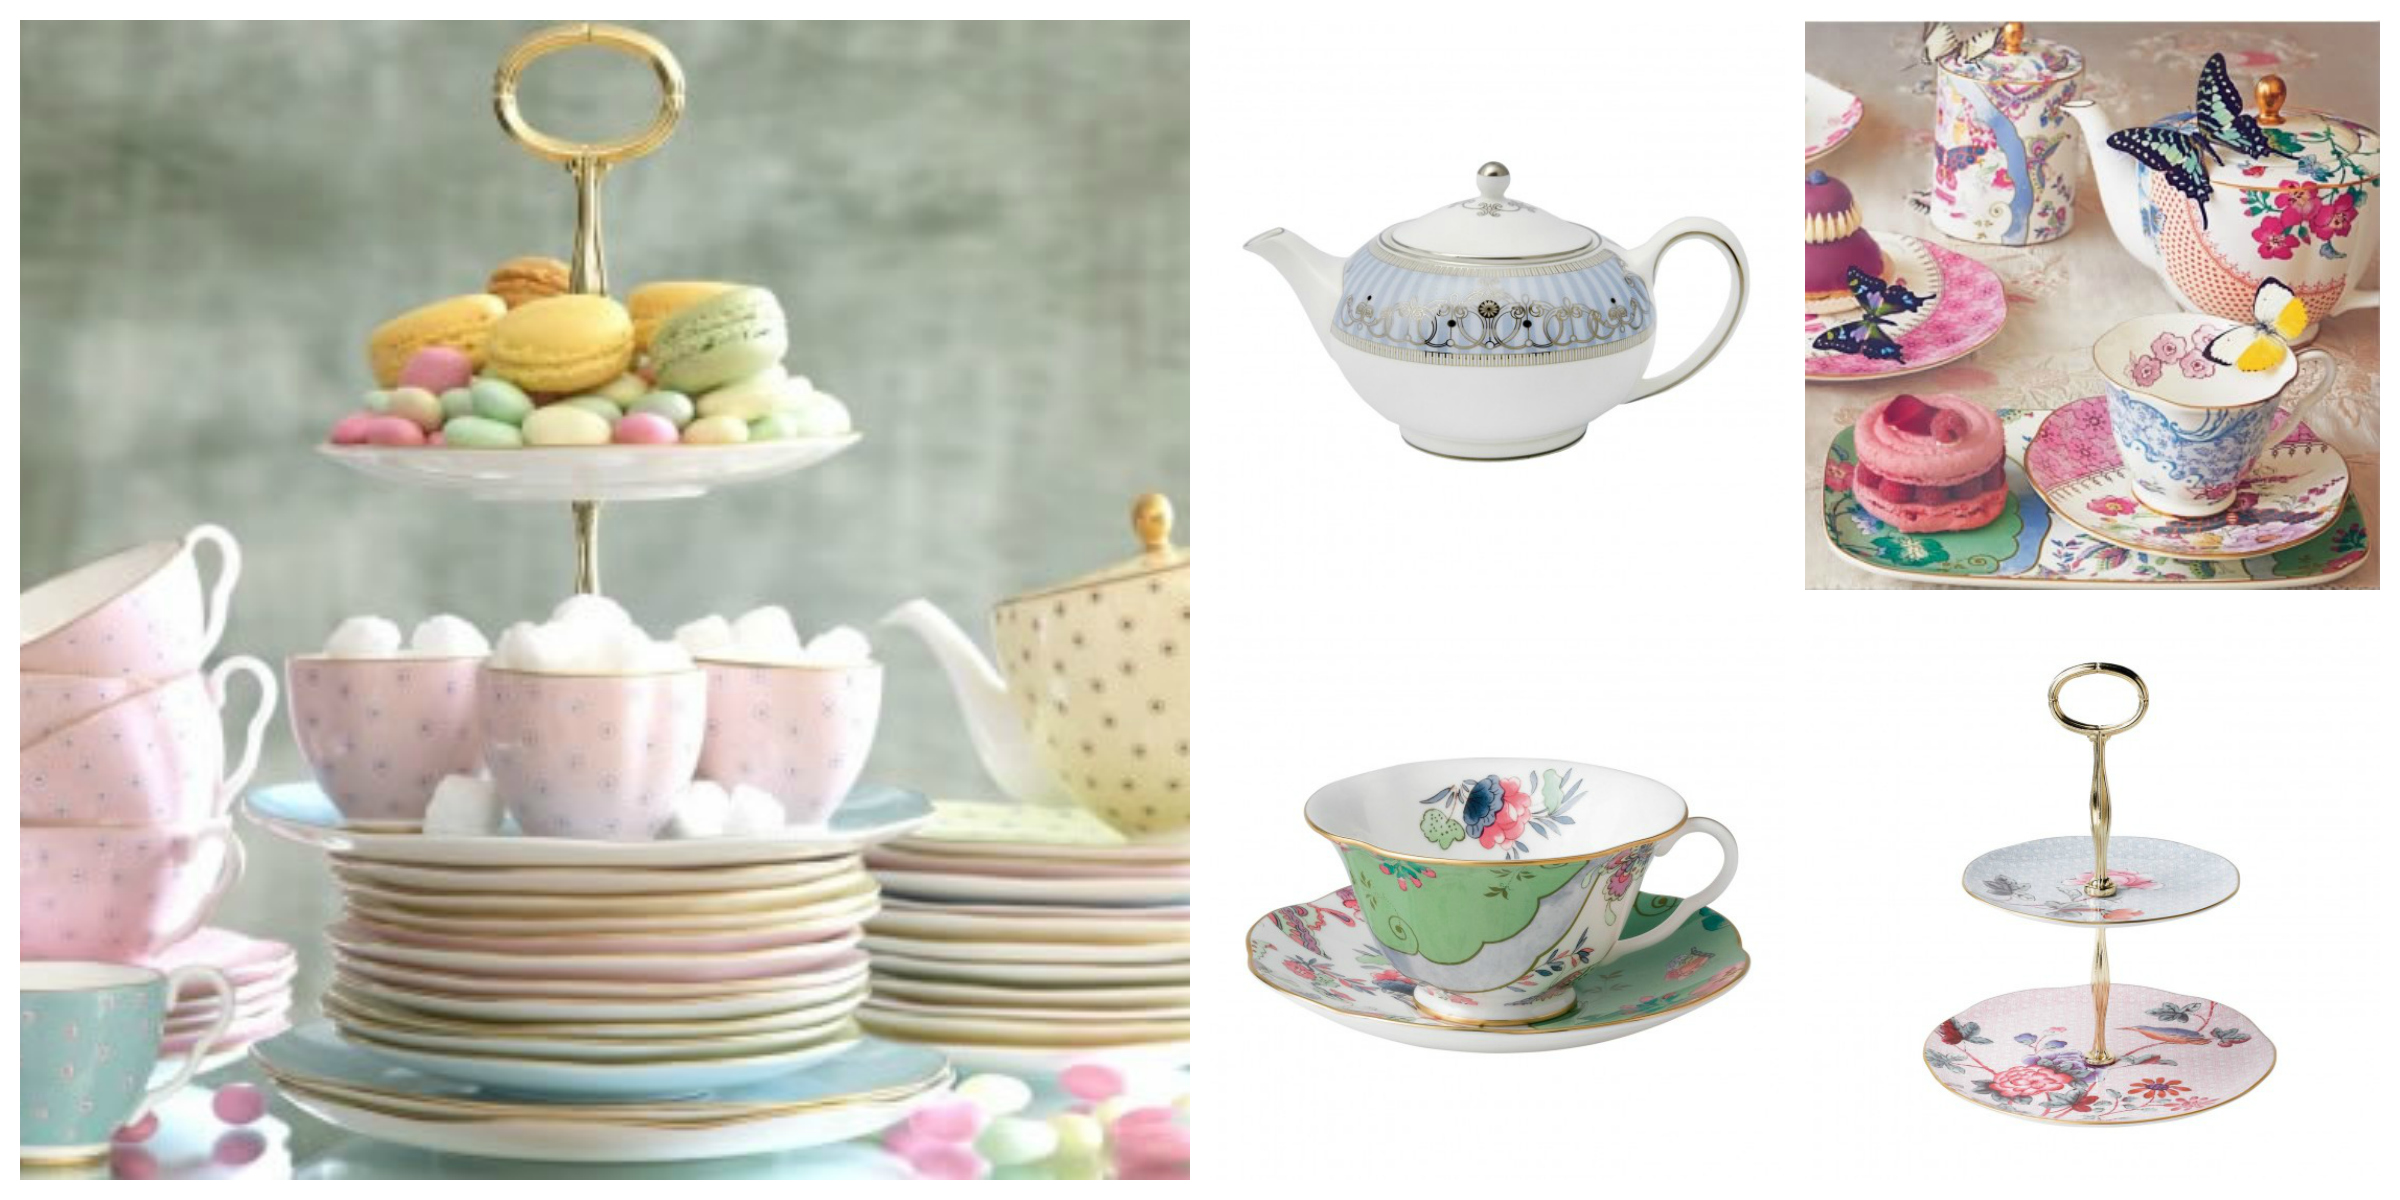 A stunning collection of bone china from Wedgwood